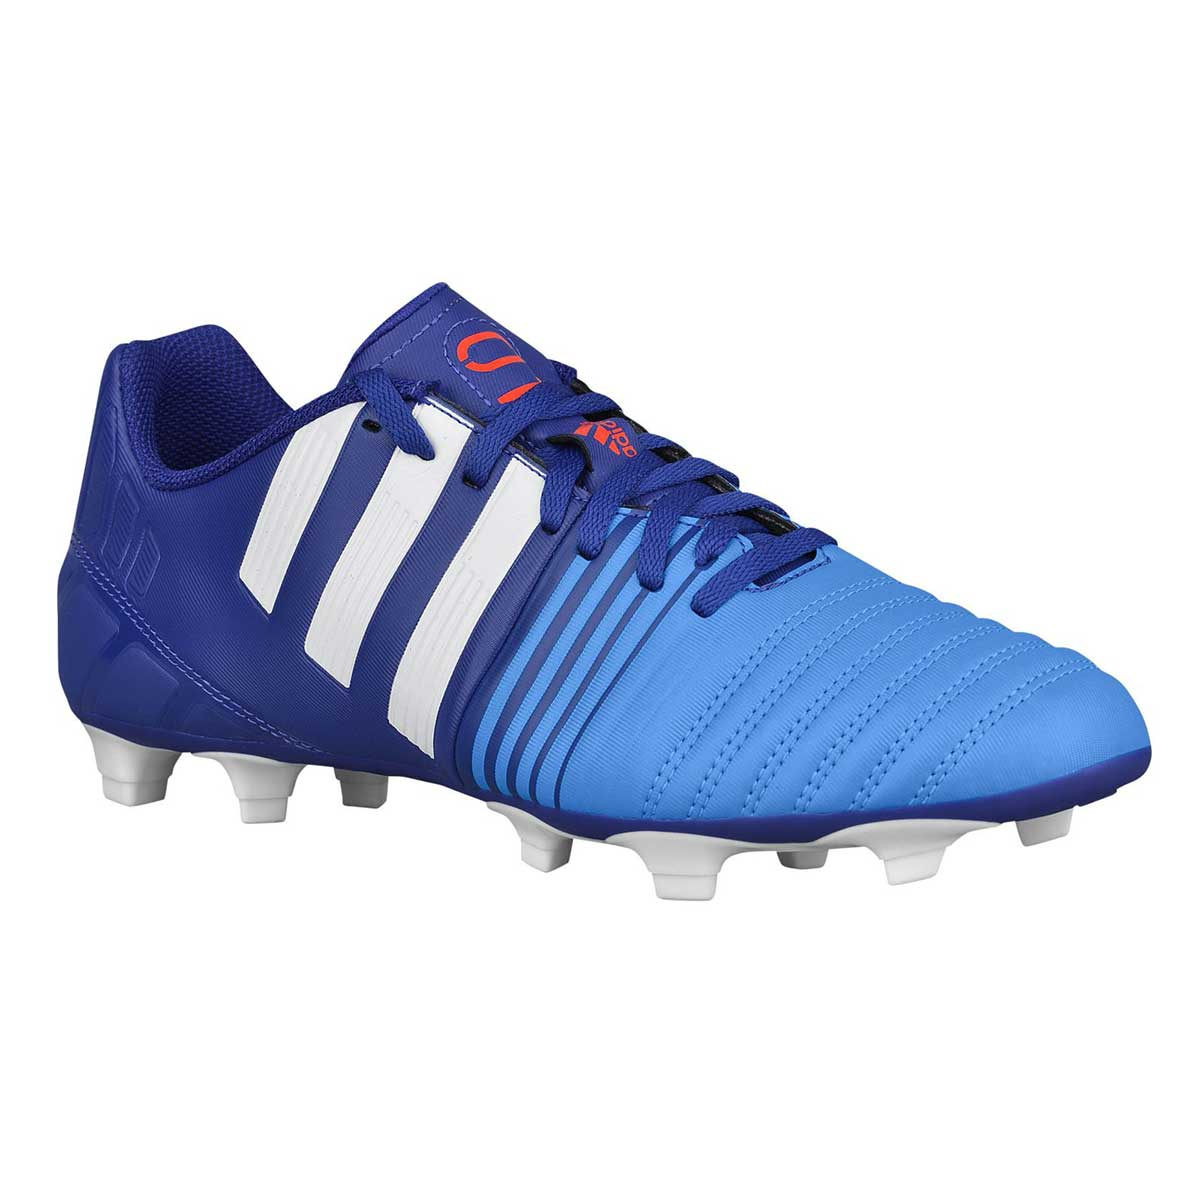 Buy Adidas Nitrocharge 4.0 FG Football Shoes Online India| Soccer ...